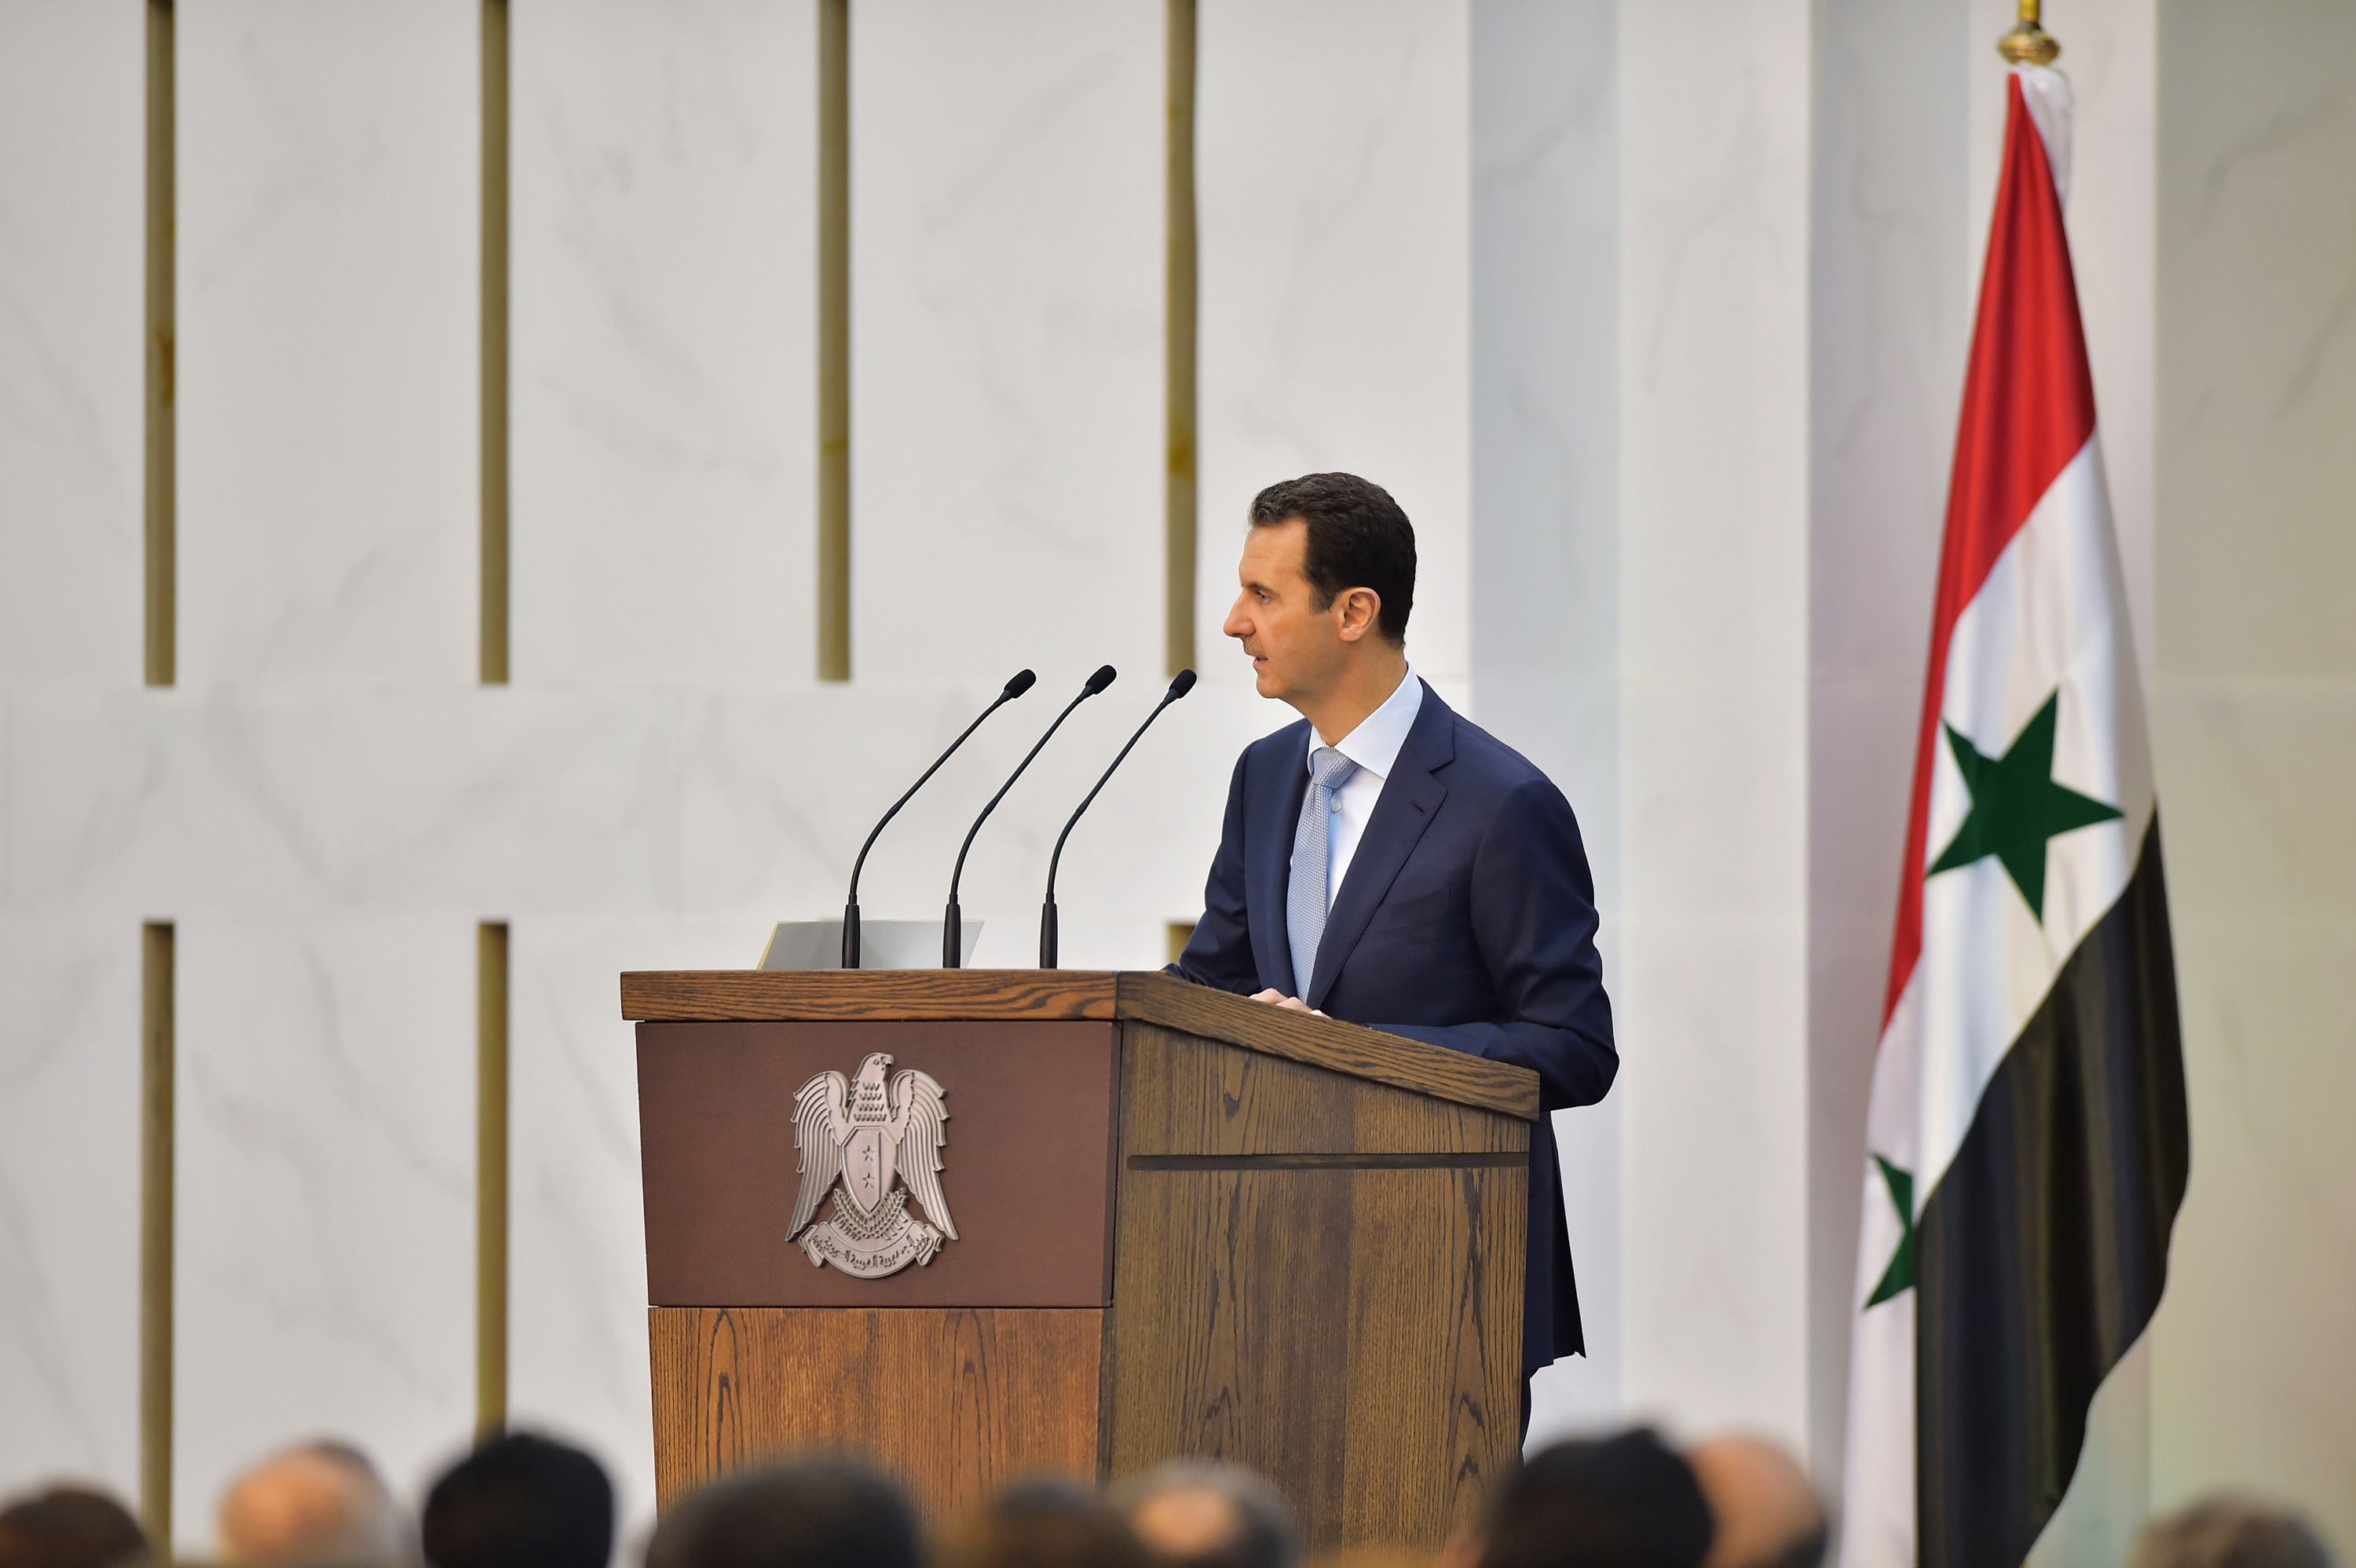 In this photo released by the Syrian official news agency SANA, Syrian President Bashar Assad delivers a speech in Damascus, Syria, Sunday, July 26, 2015. (AP)